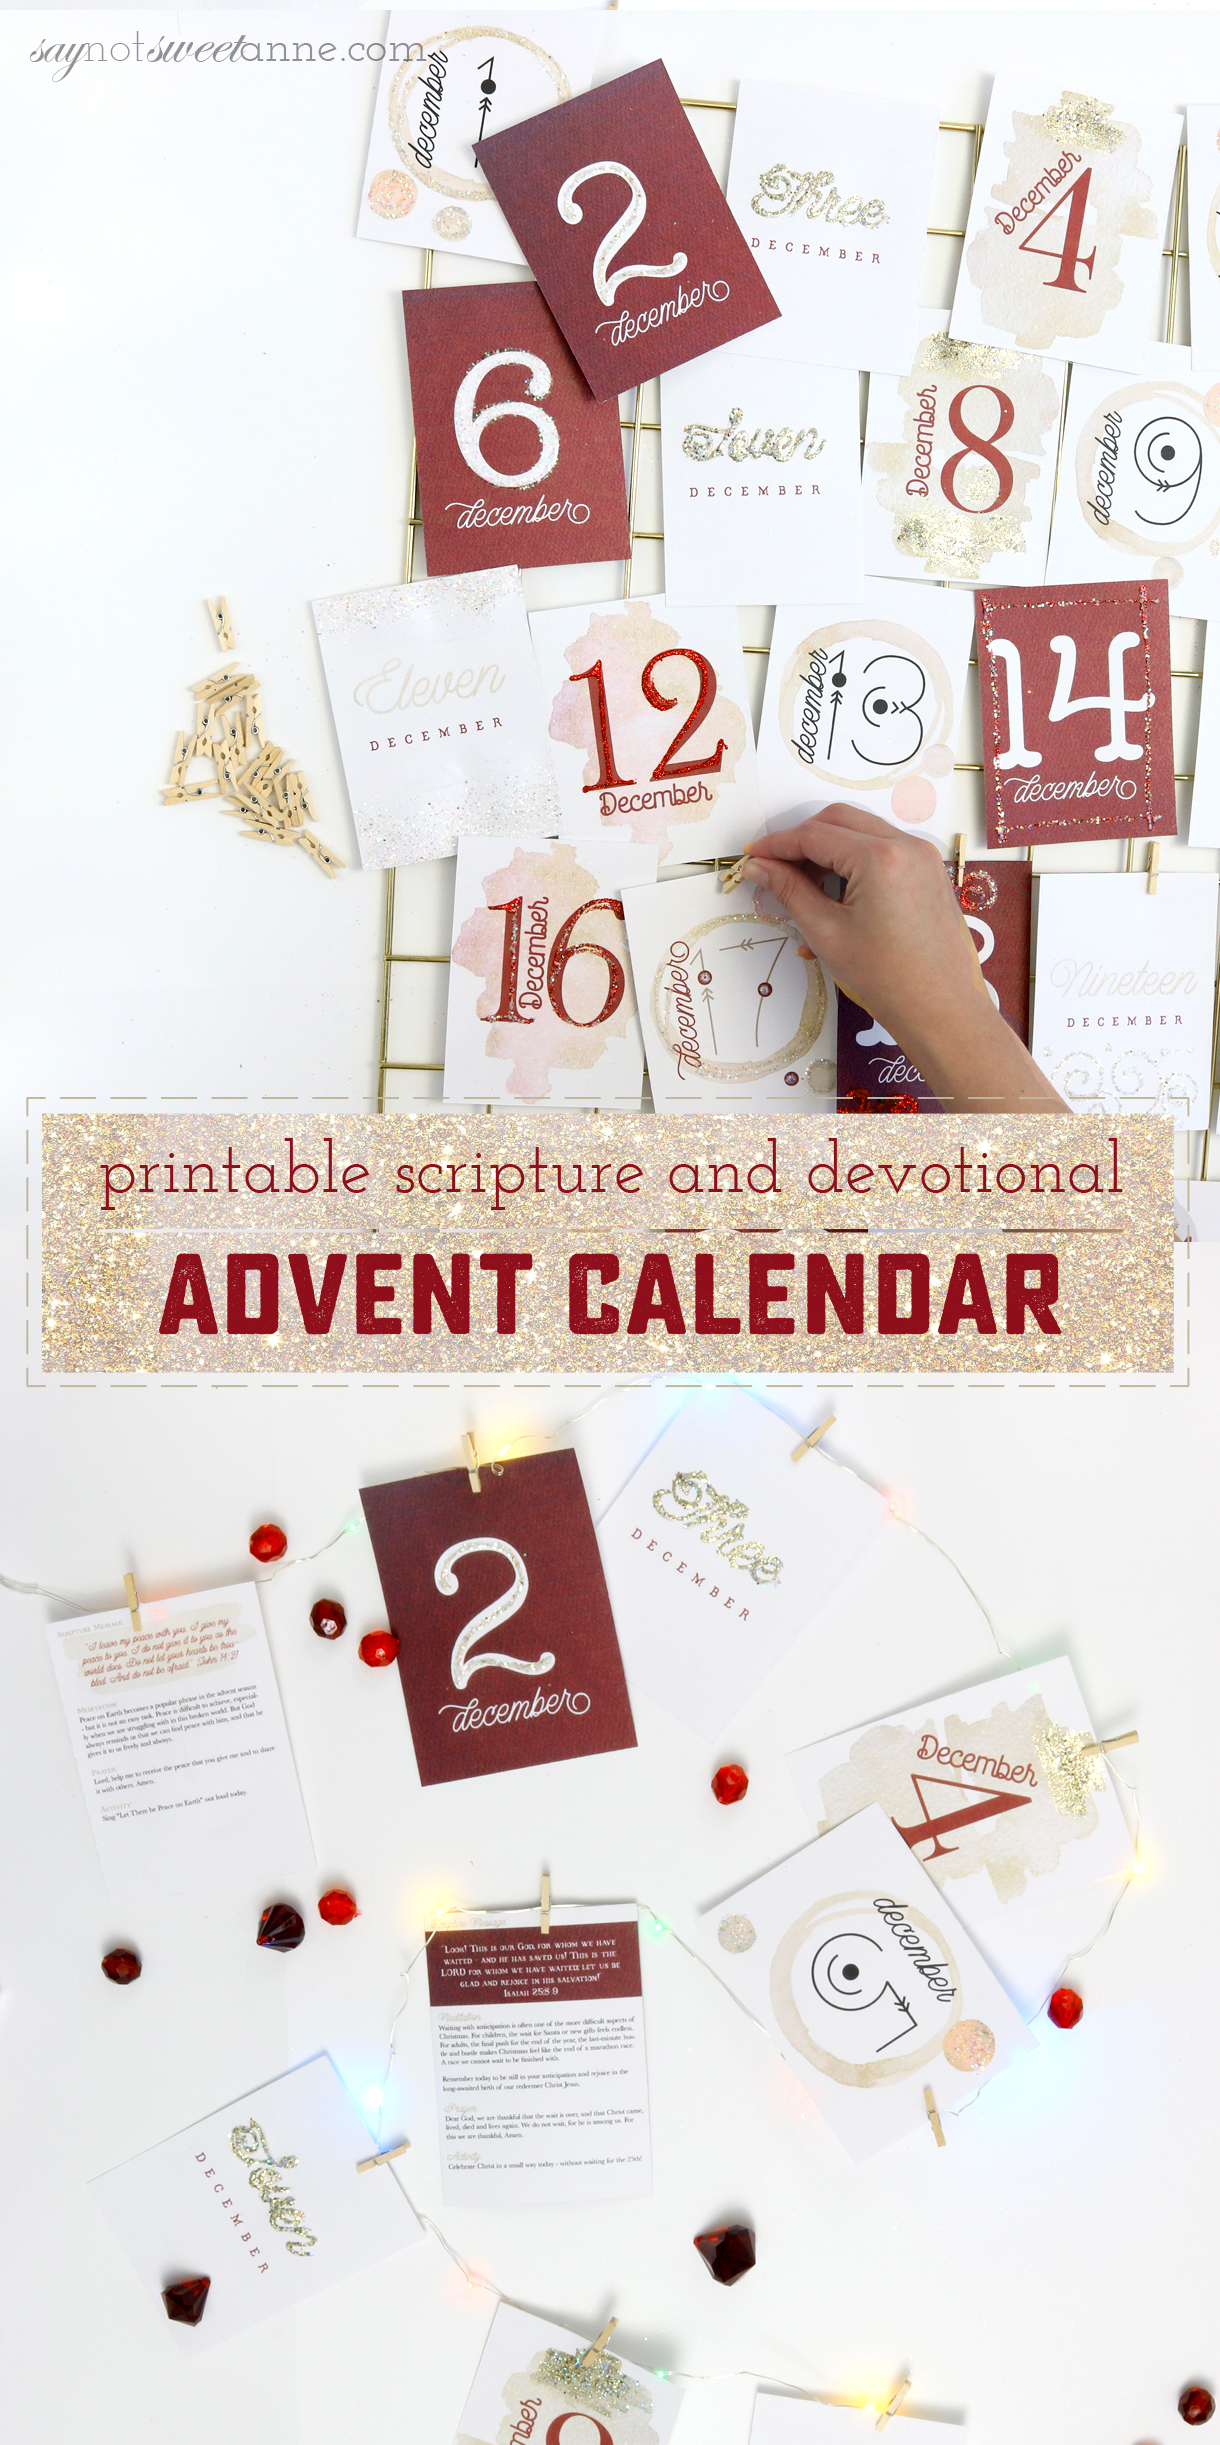 photo regarding Printable Advent Calendar named How towards Deliver a Appealing and Significant Printable Arrival